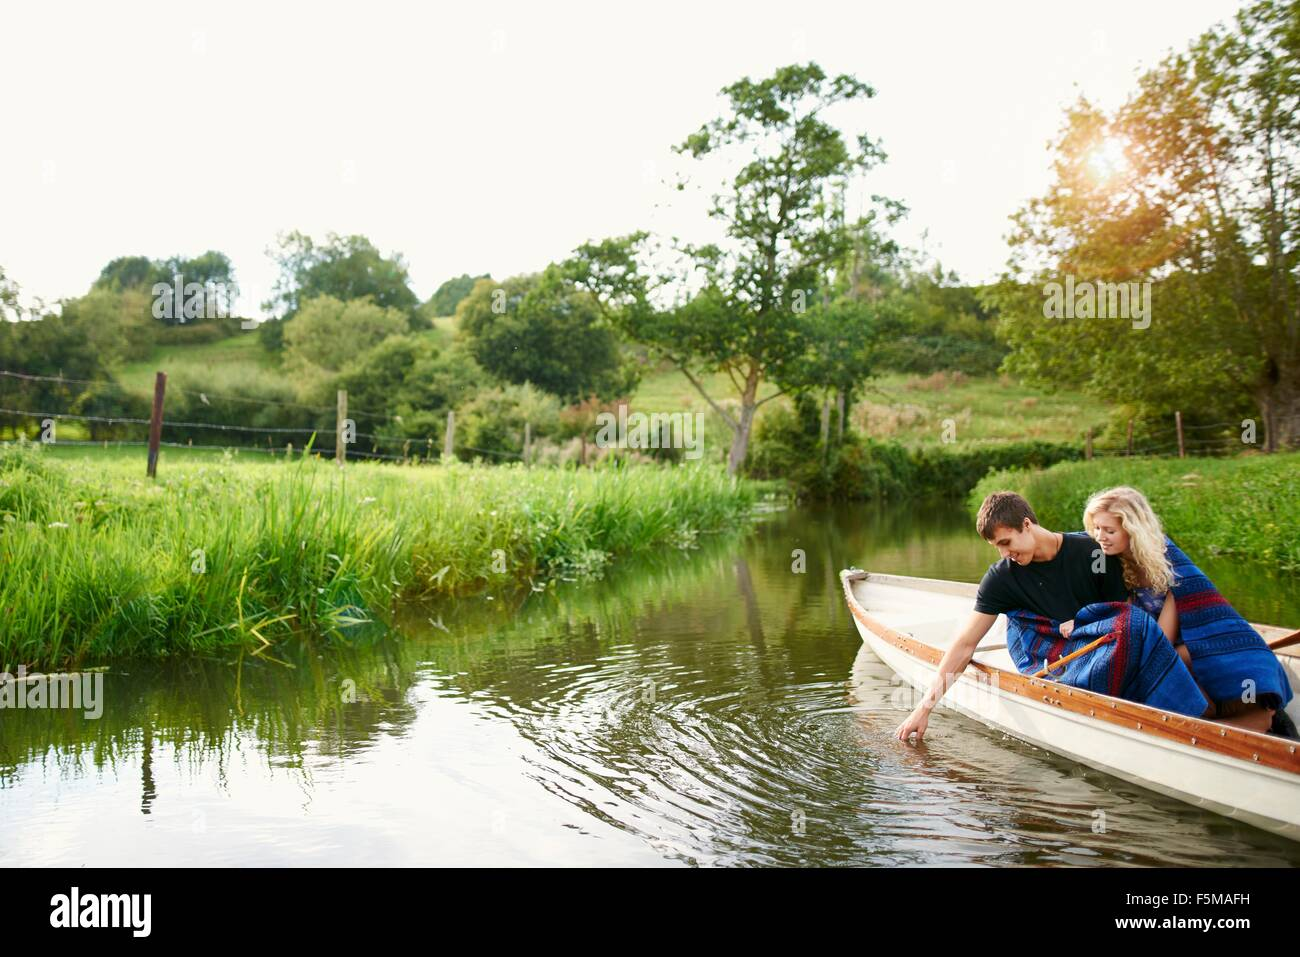 Young man with girlfriend touching water from river  rowing boat - Stock Image